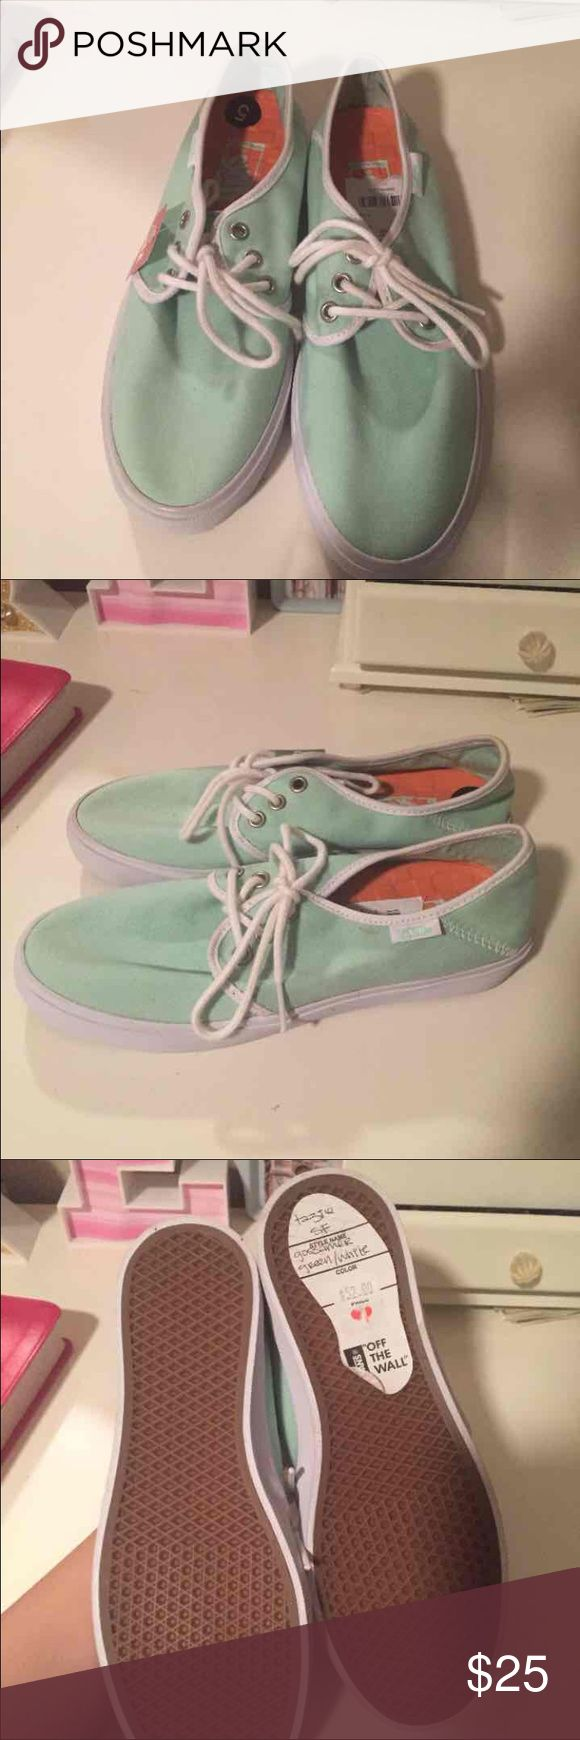 NWT Mint Vans Shoes NEW never worn. Just a bit dusty from being stored. Originally $52. Vans Shoes Sneakers